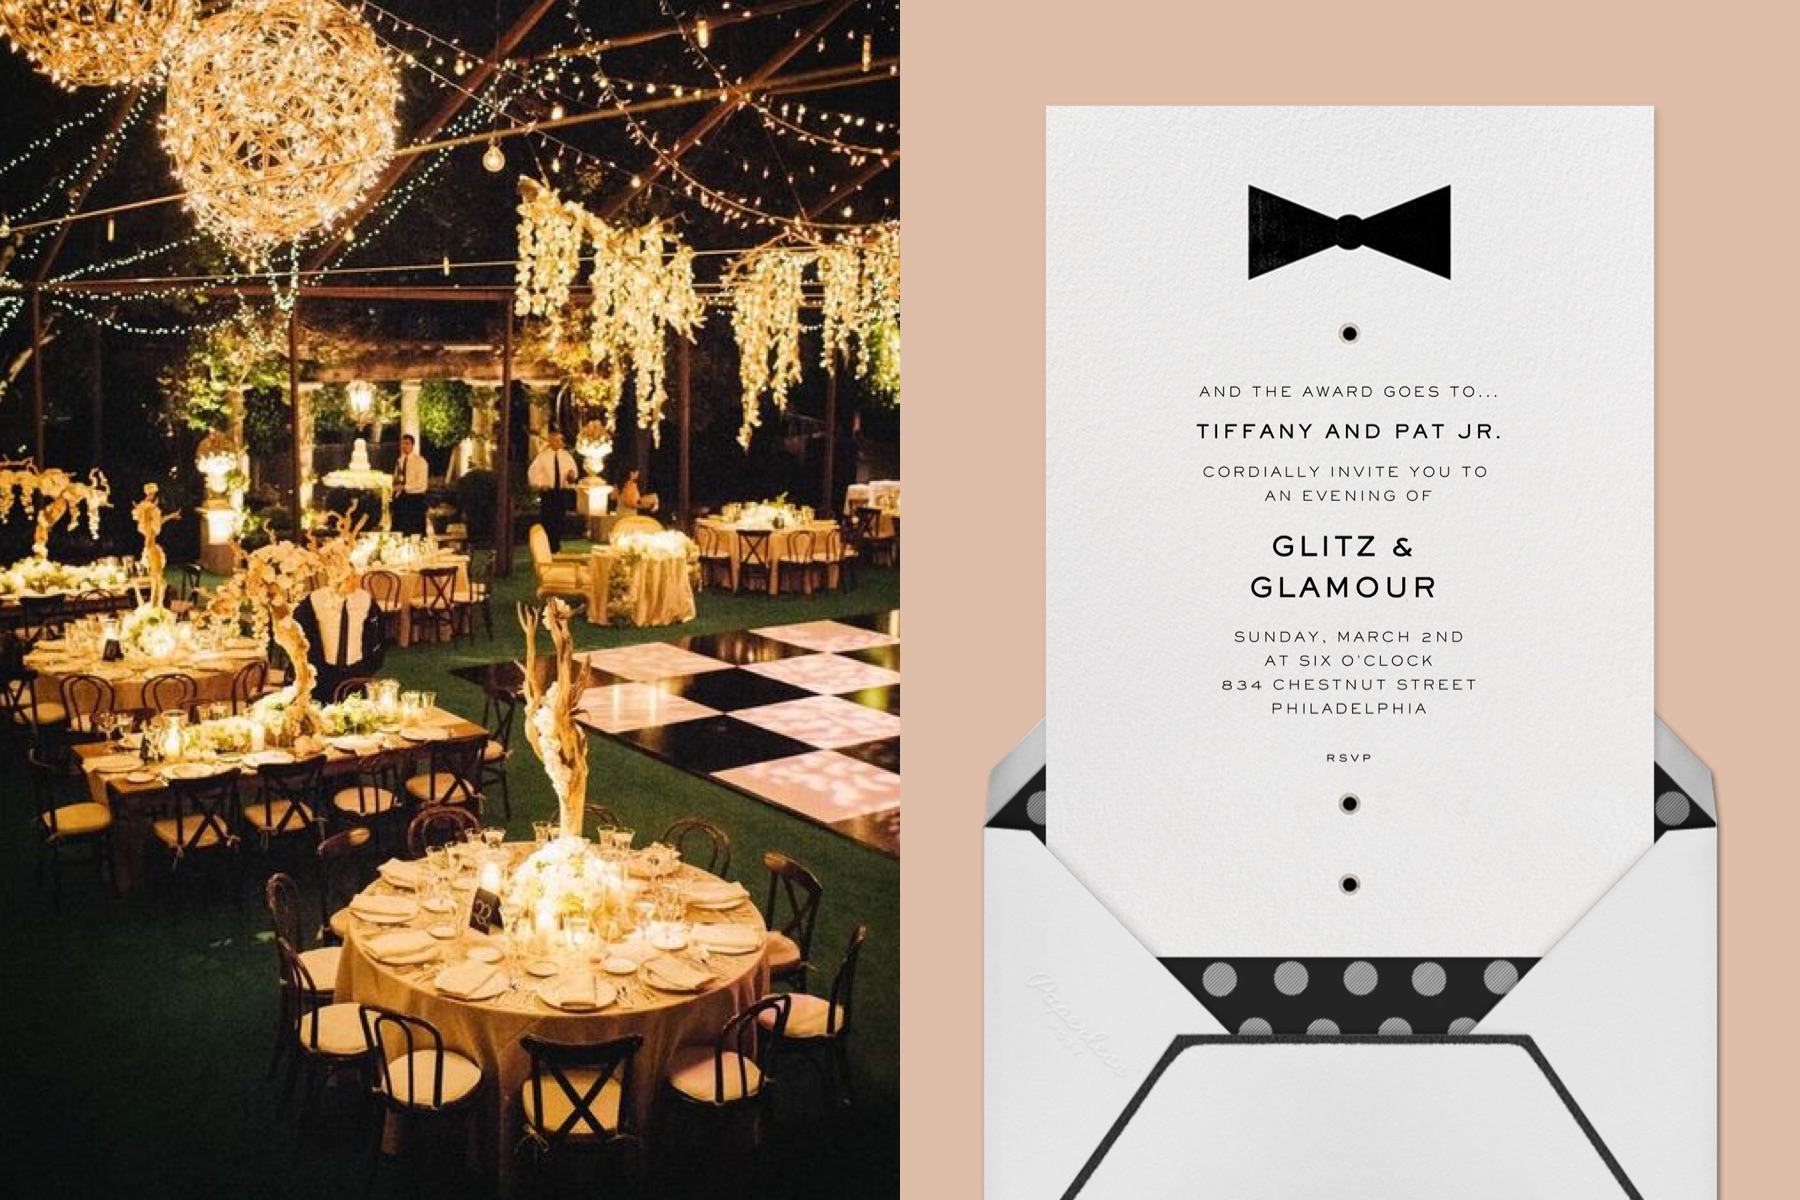 """Left: Decadent party decor including chandeliers and black and gold table settings and dance floor. 